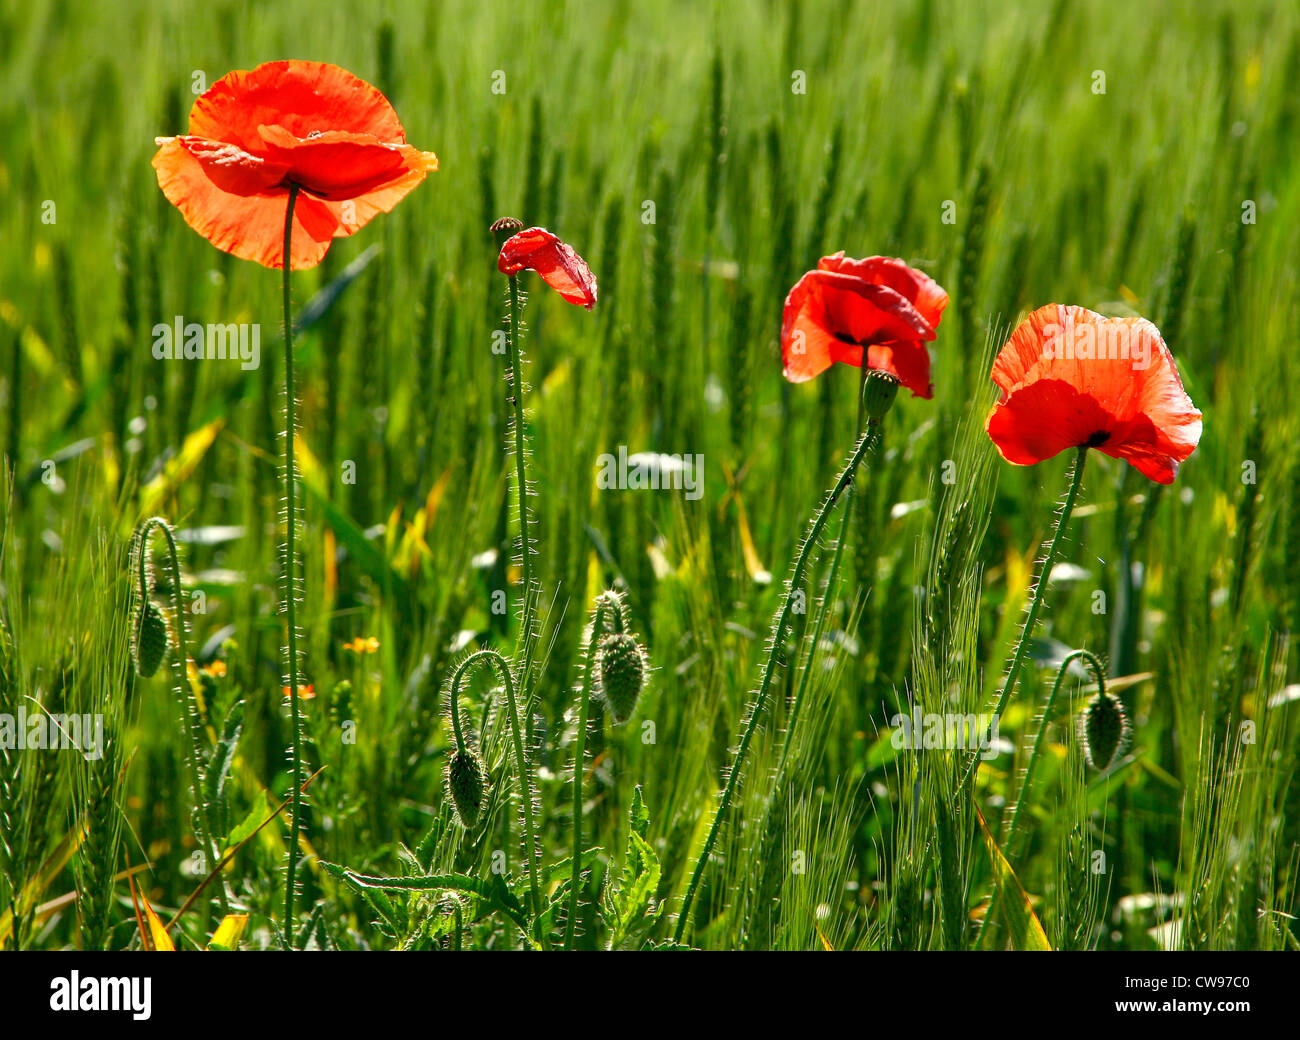 Red poppy flower in green wheat - Stock Image